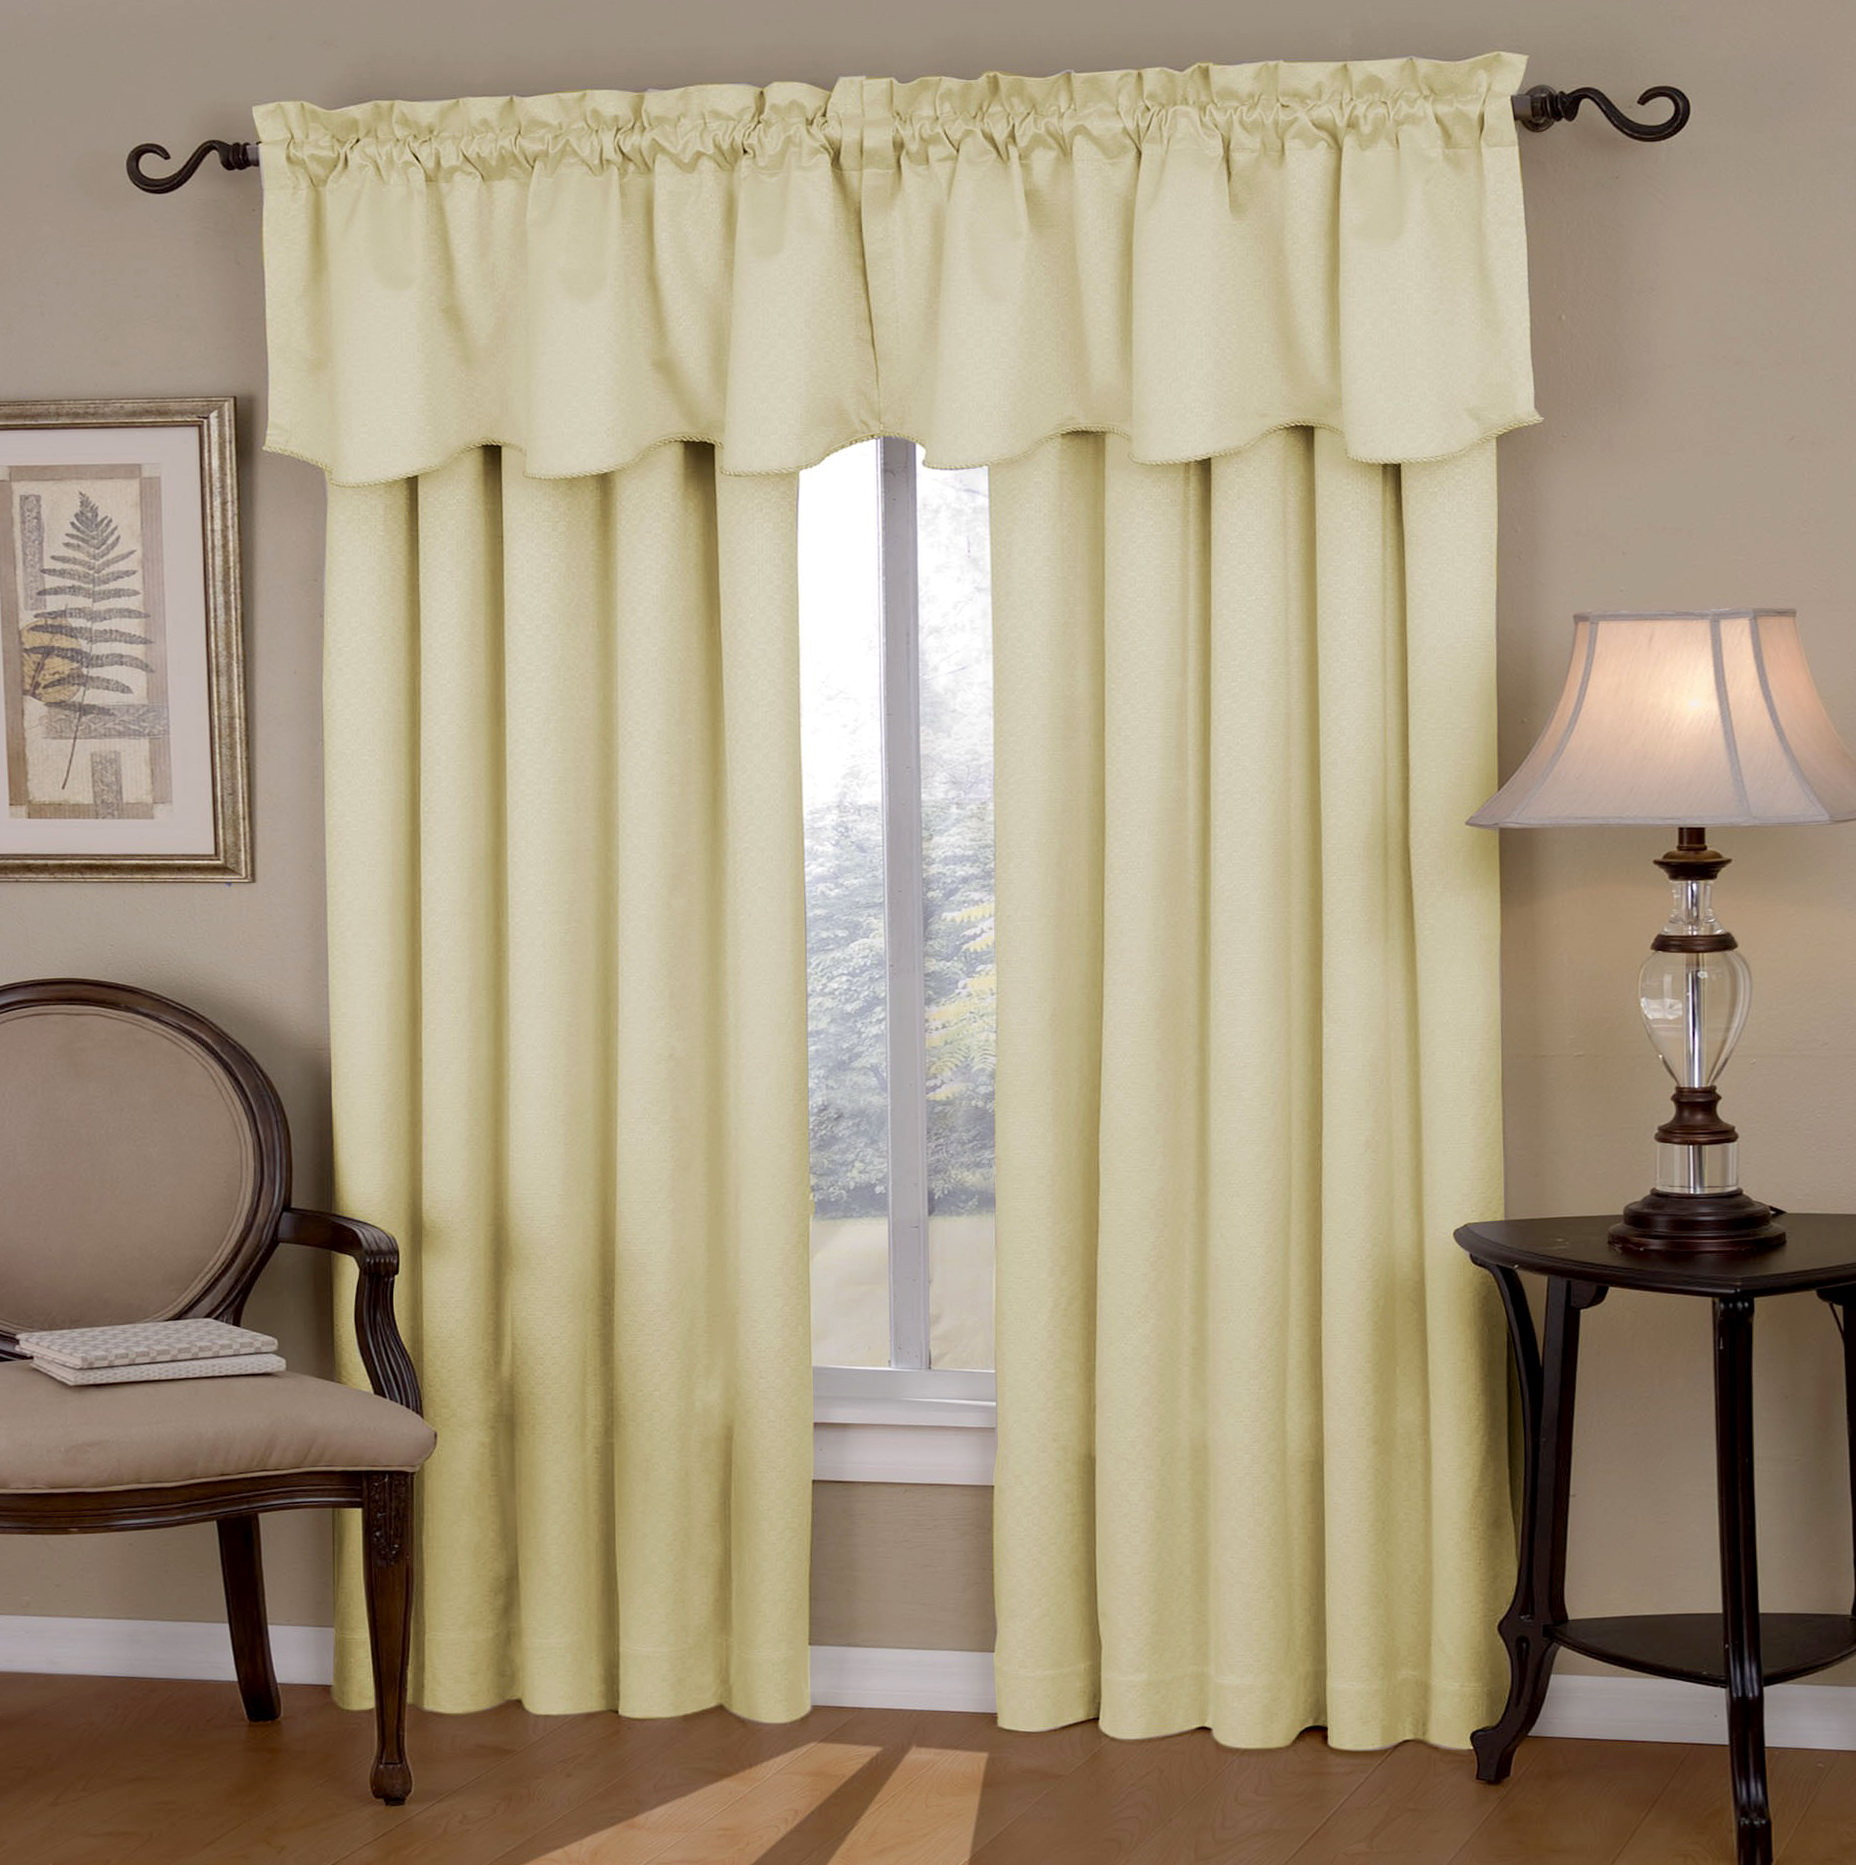 Noise Blocking Curtains Australia Home Design Ideas